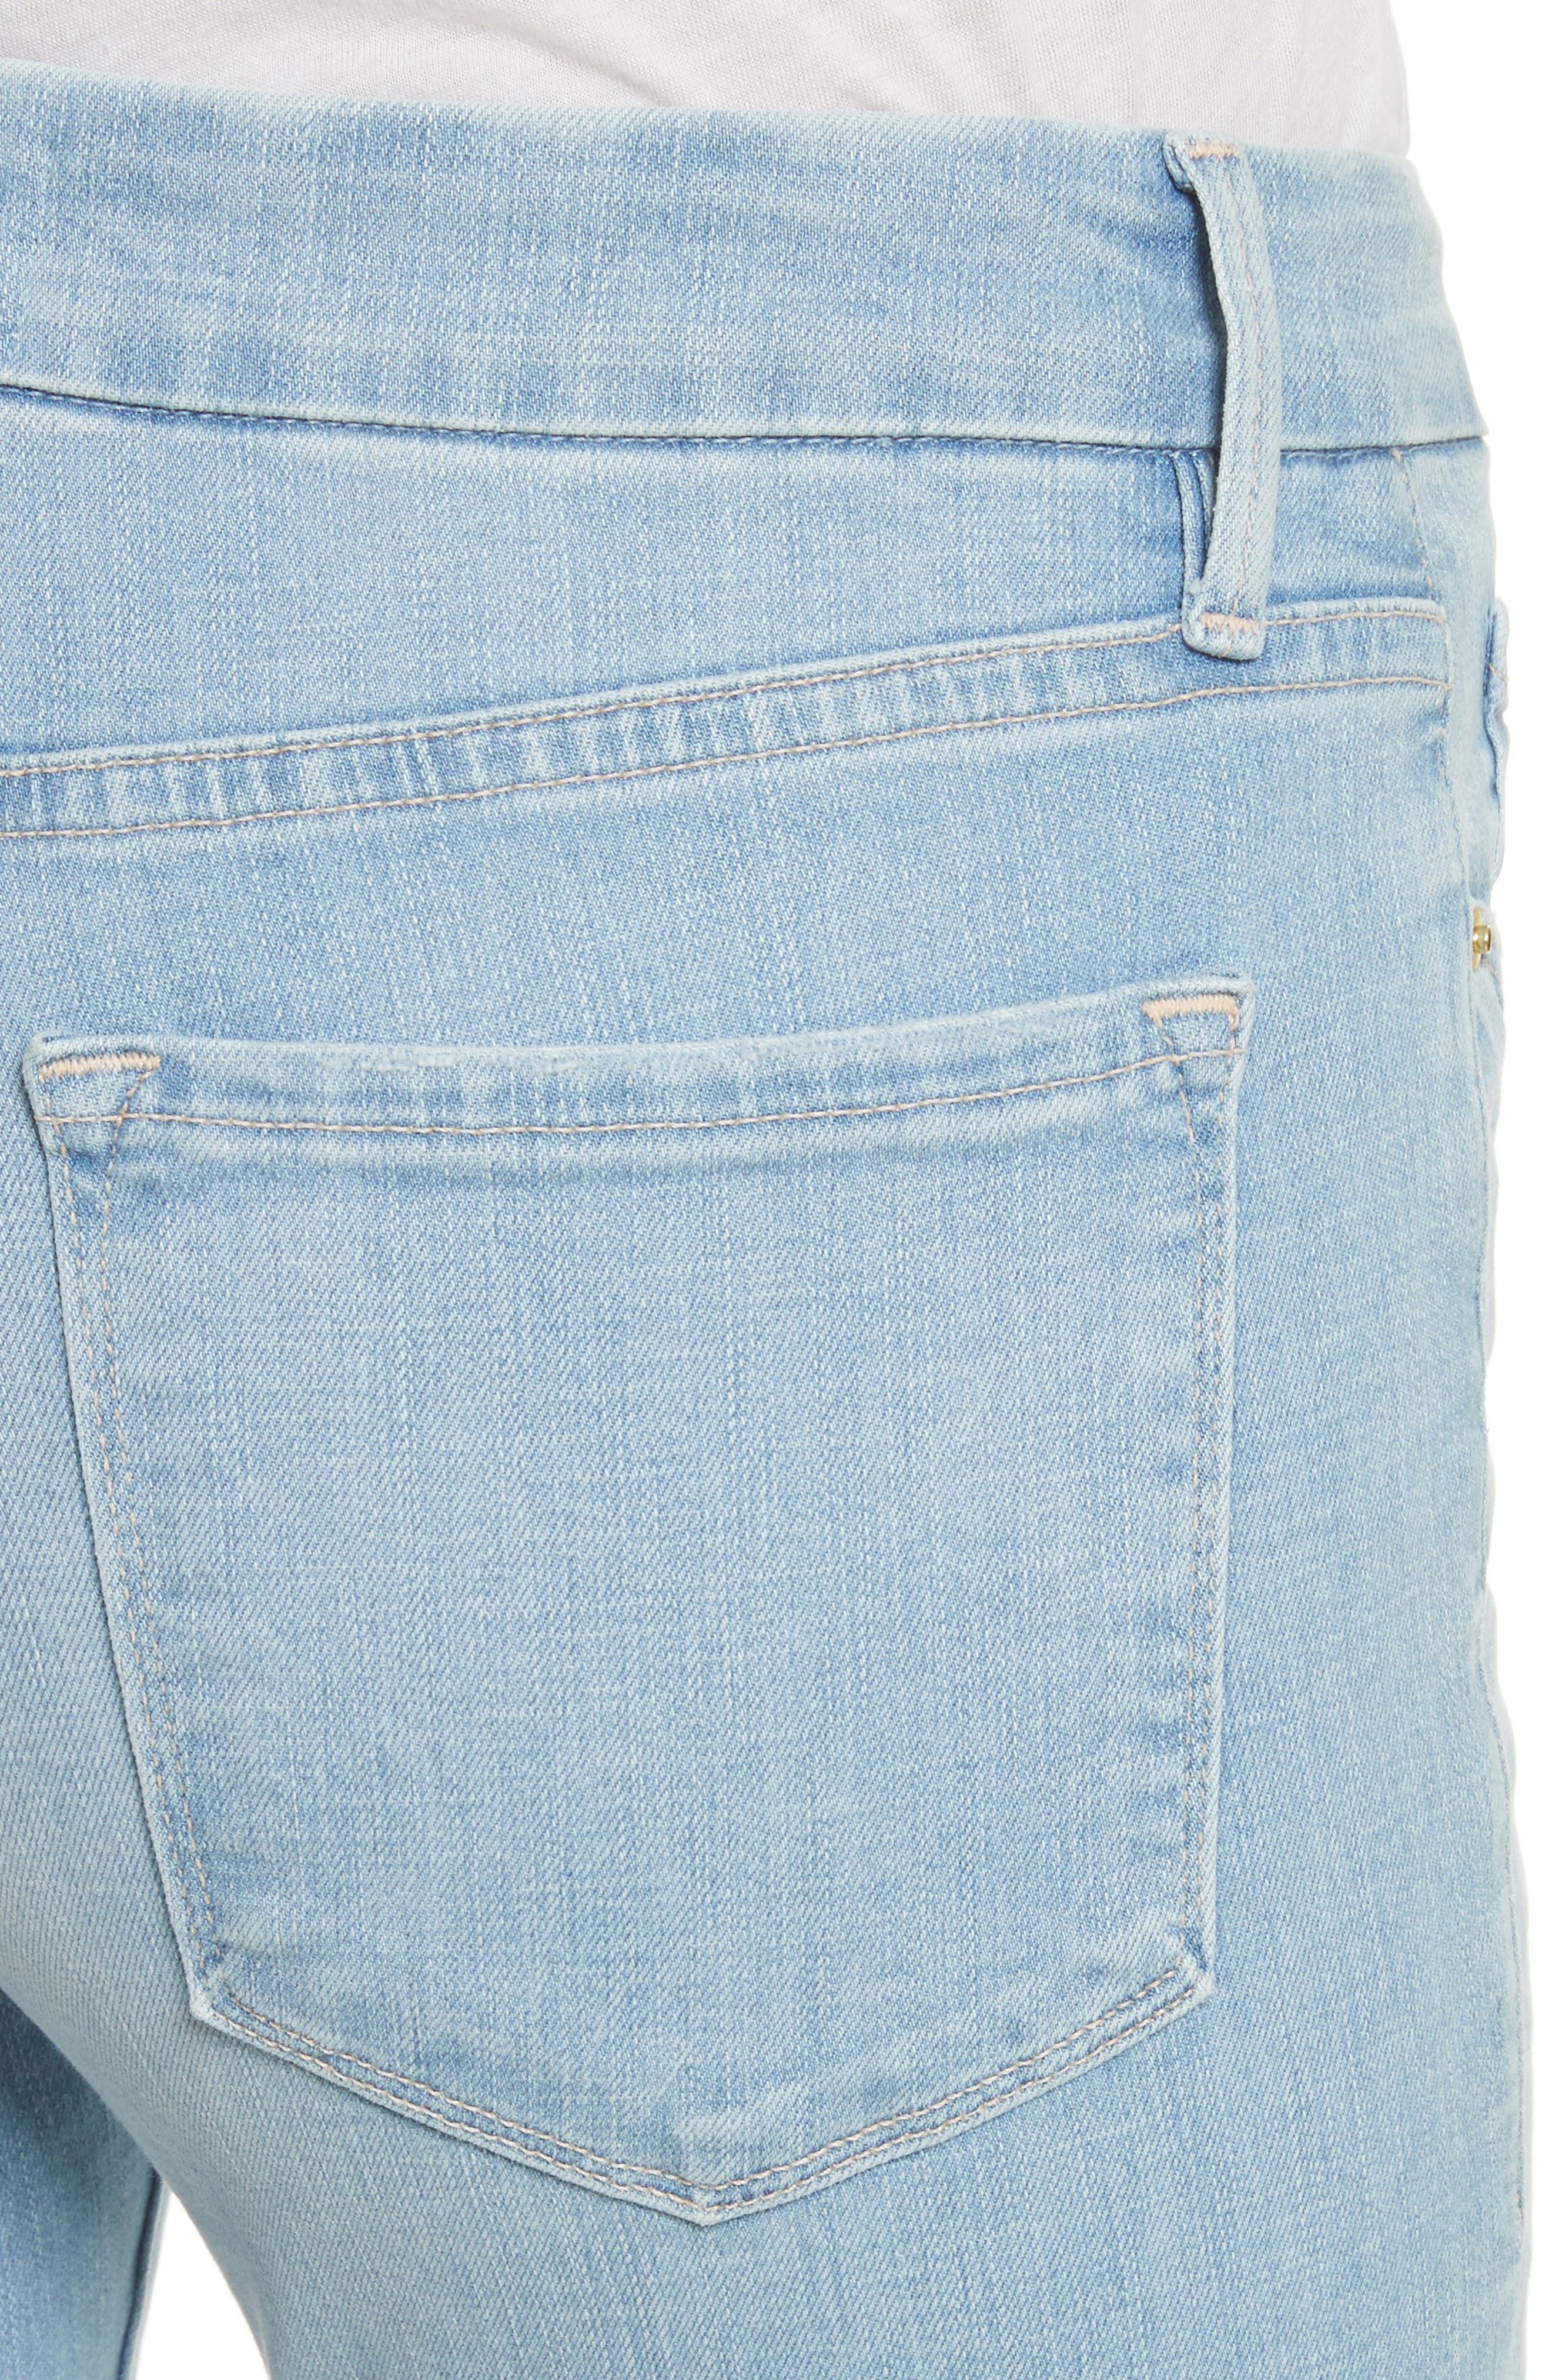 Le Crop Mini Boot Jeans,                             Alternate thumbnail 4, color,                             Kitwood